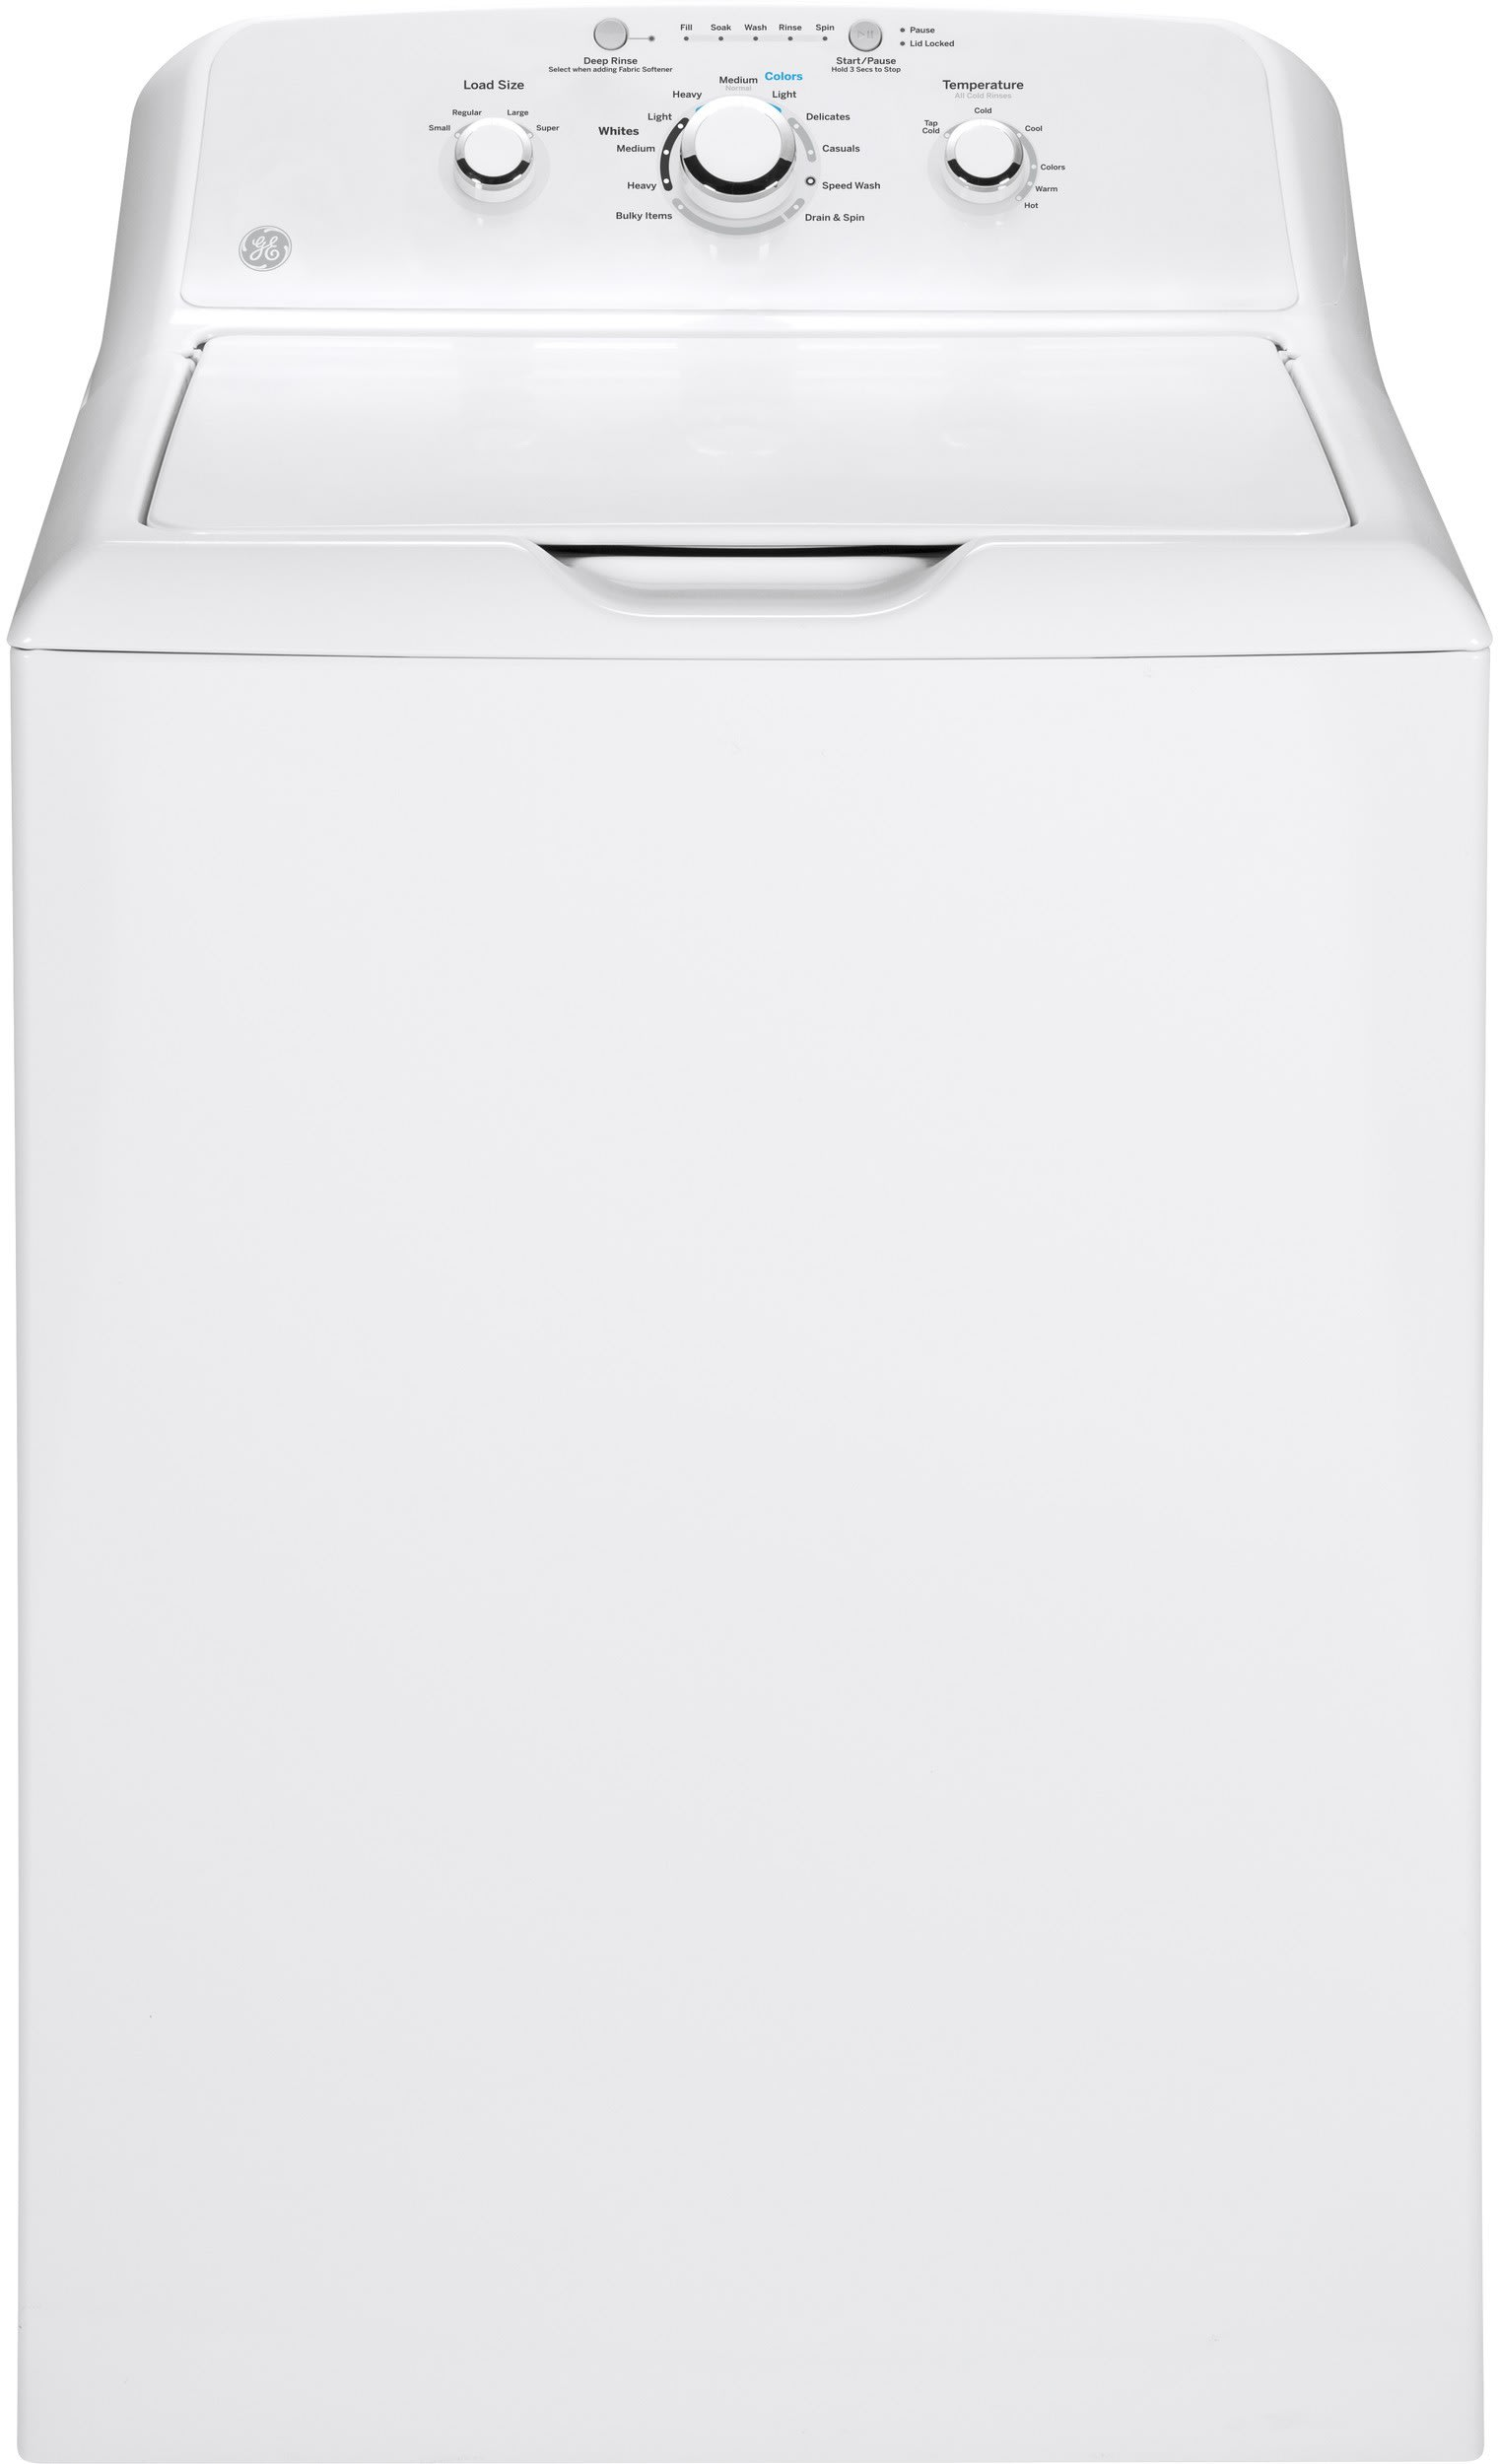 GE GTW330ASKWW 27 Inch 3.8 cu. ft. Top Load Washer with 11 Wash Cycles, 700  RPM, Deep Rinse, Speed Wash, Bleach and Fabric Softener Dispensers, ...